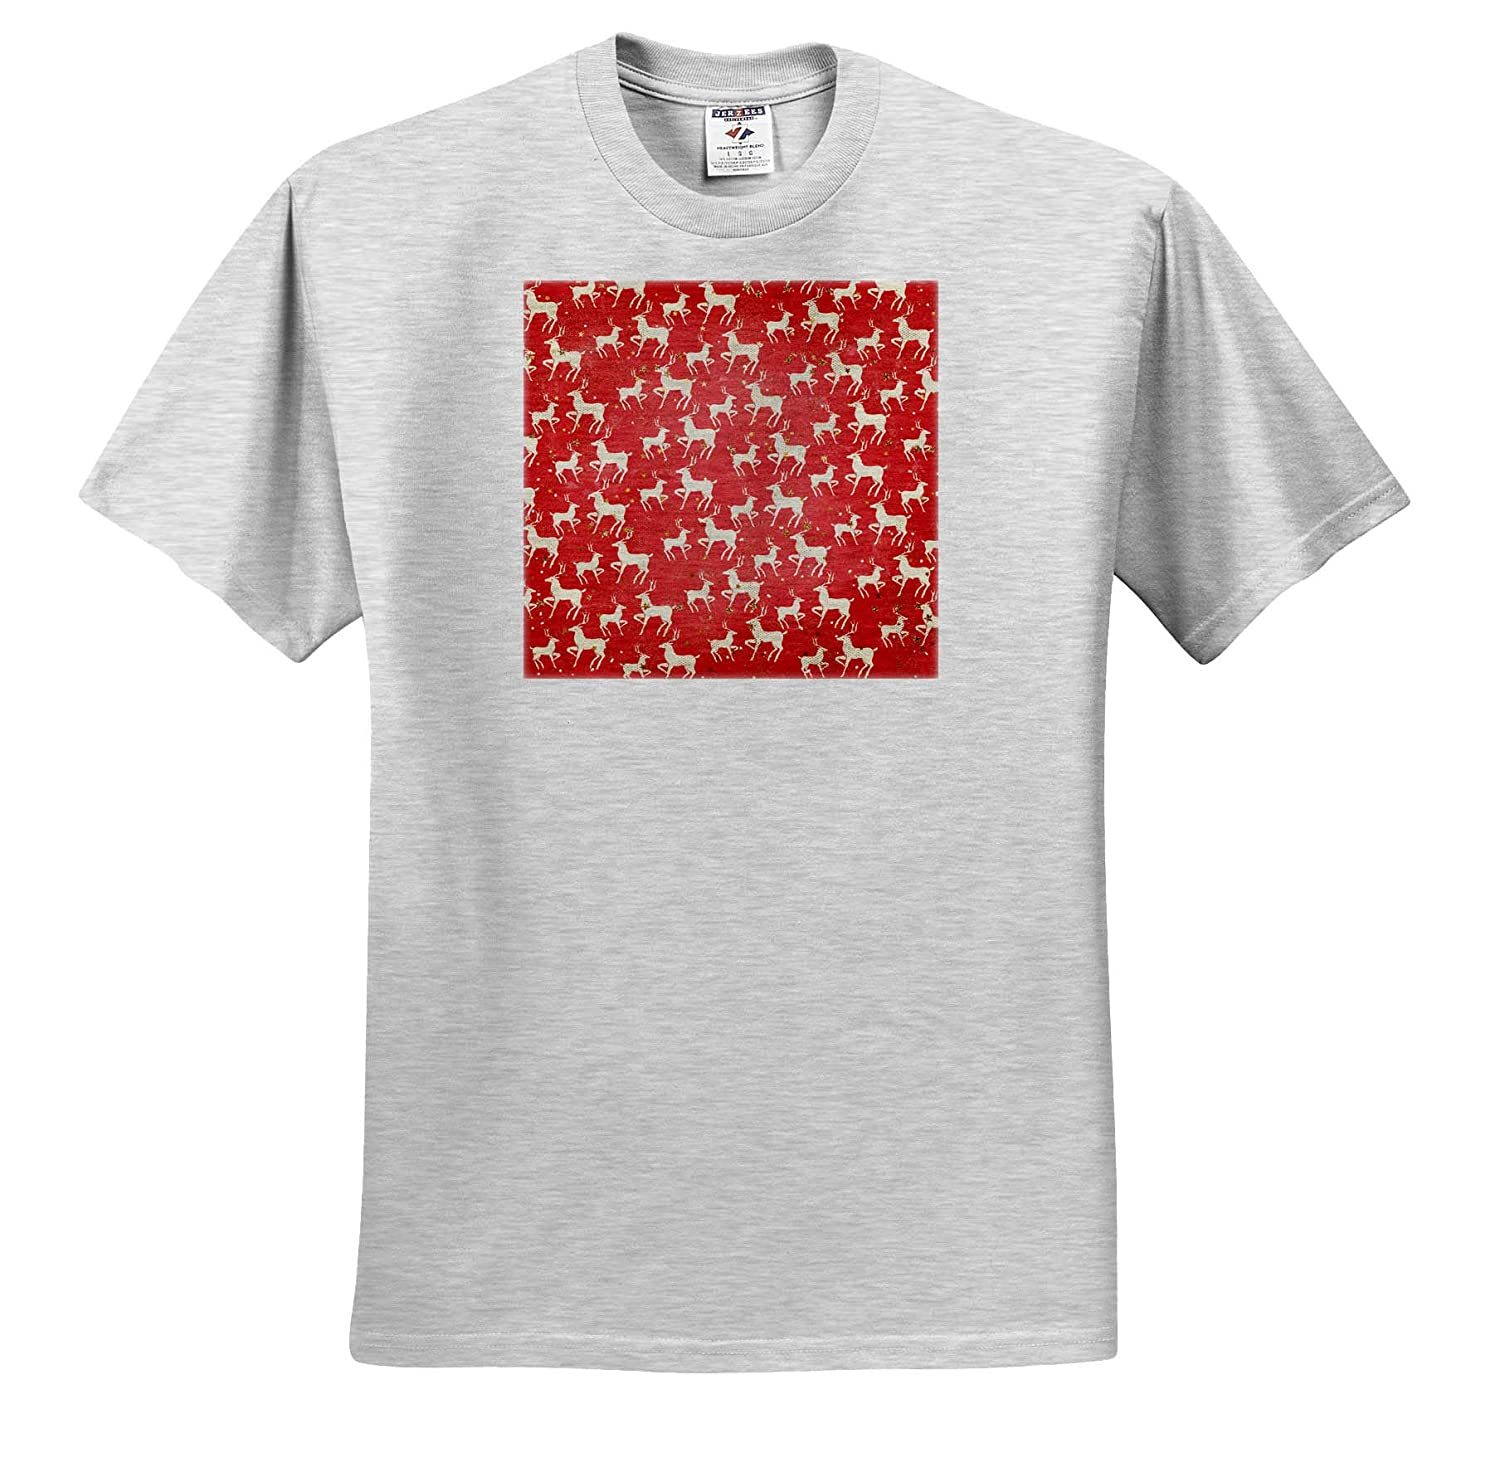 3dRose Anne Marie Baugh ts/_318554 Christmas Cute Reindeer and Image of Gold Stars Pattern Adult T-Shirt XL